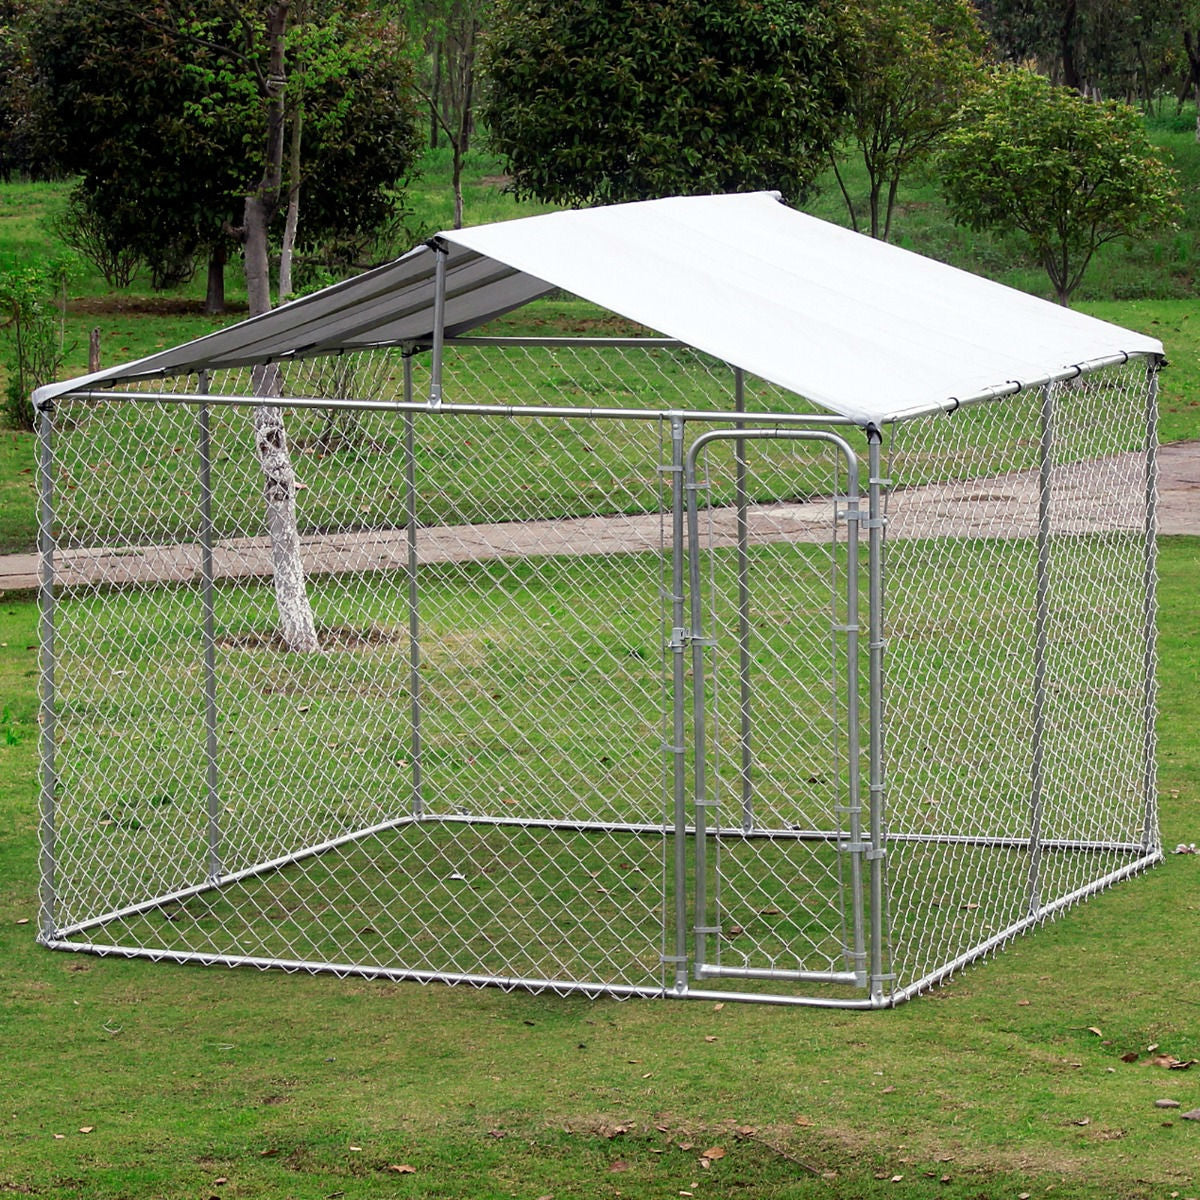 10ft x 10ft x 6ft Large Chain Link Outdoor Dog Play Pen House with Cover